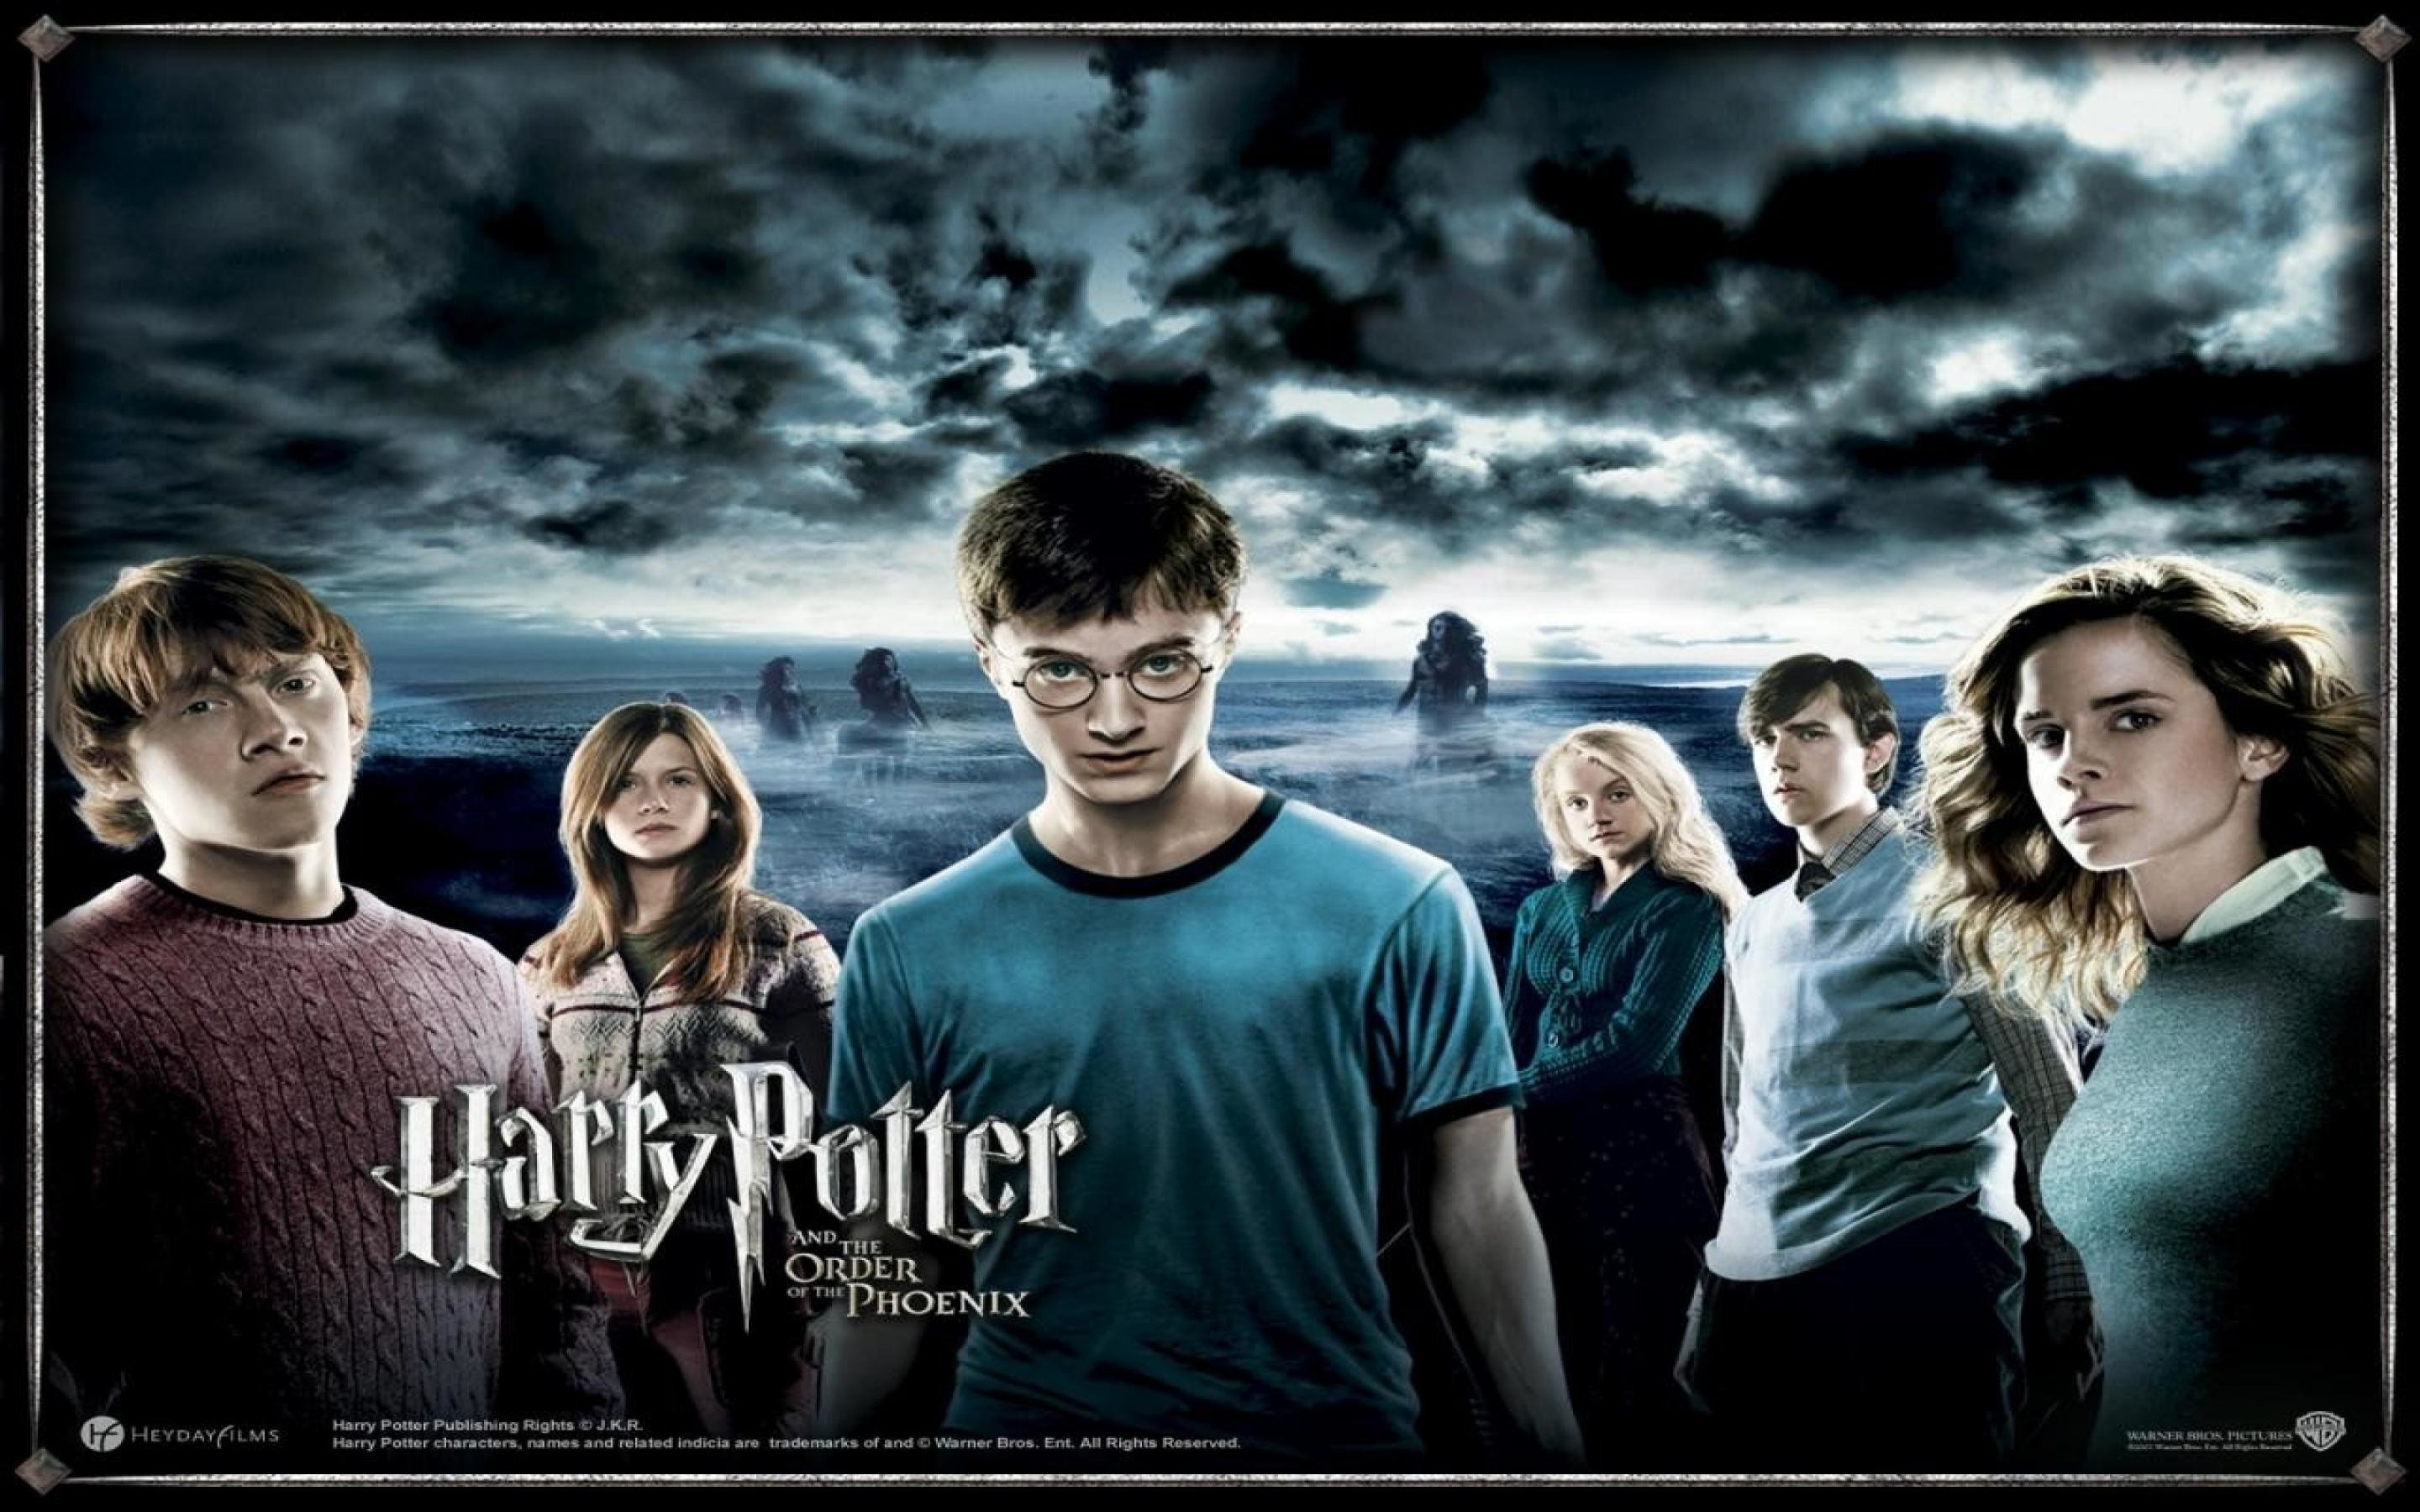 … Download and View Harry Potter Cast Wallpaper Wallpapers For Your  Desktop Or Mobile Background In HD